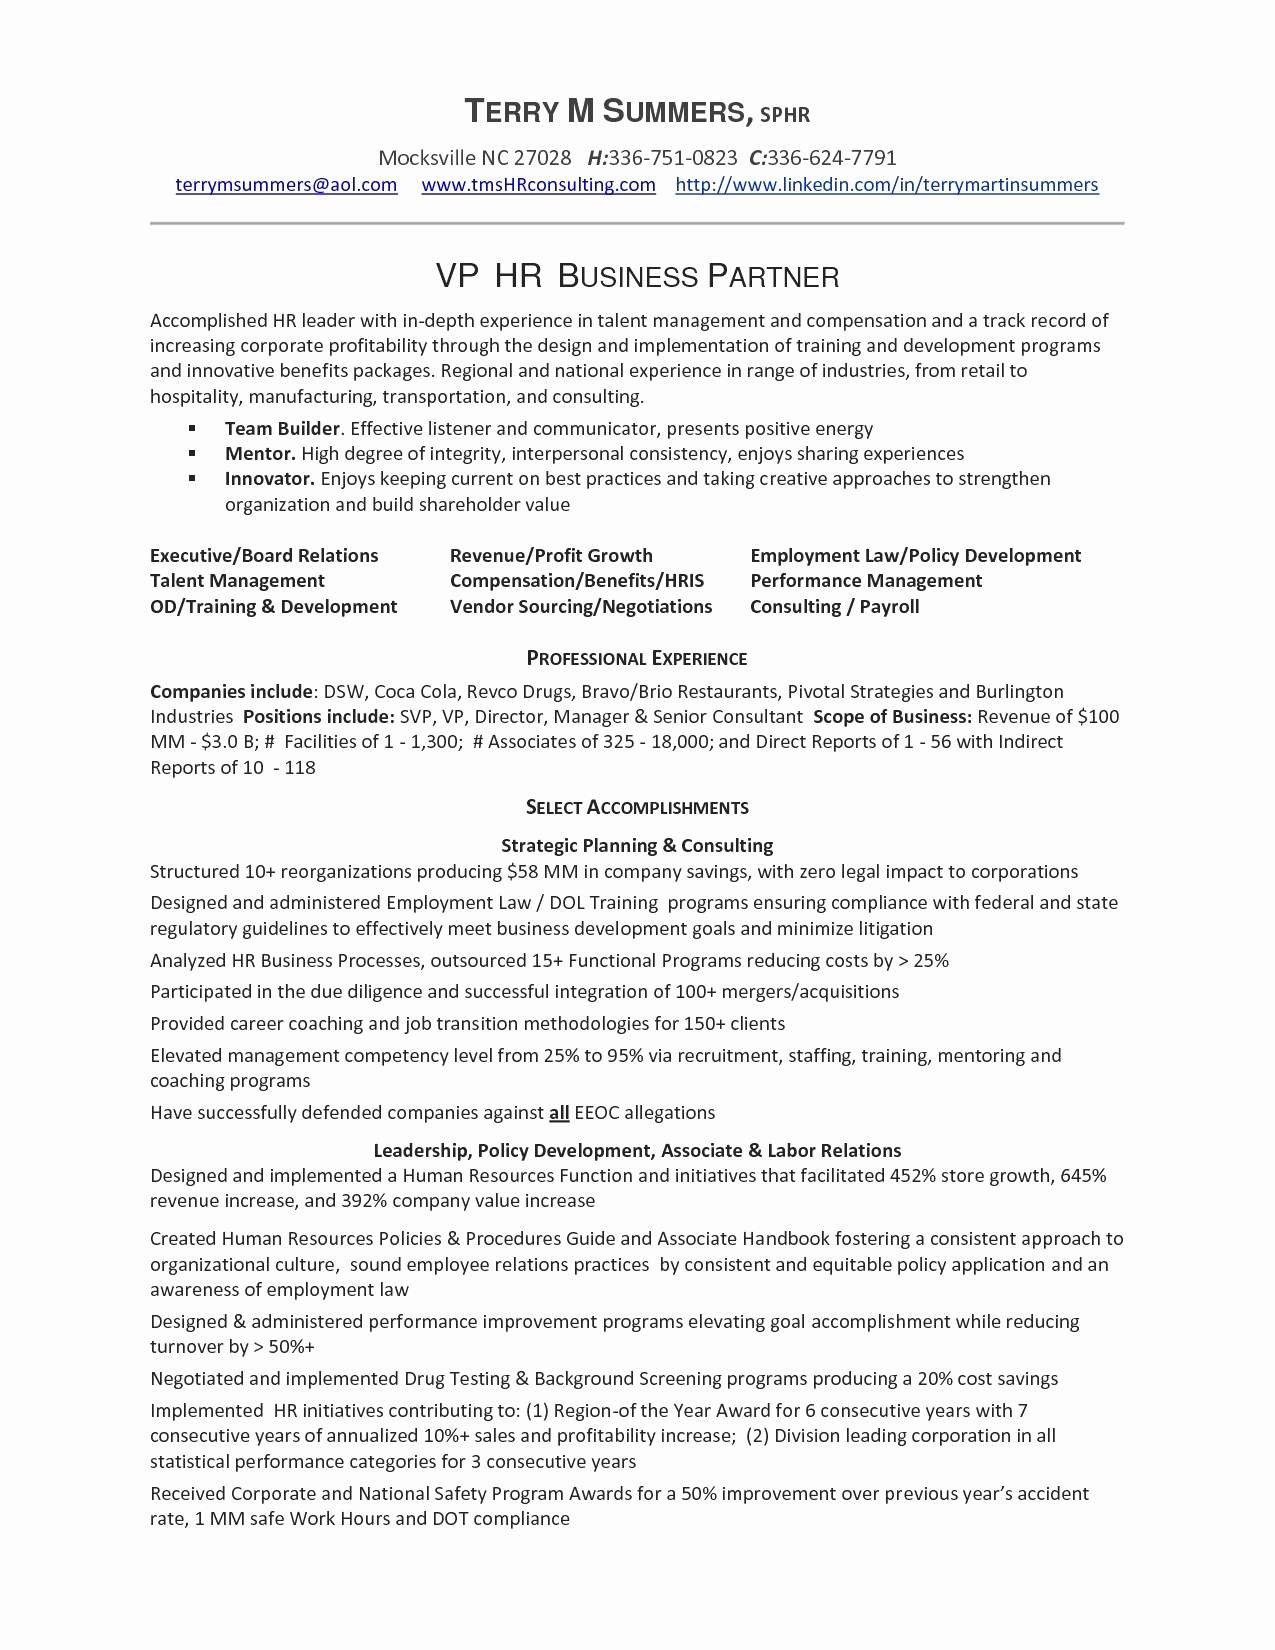 Banquet Server Job Description for Resume - Banquet Server Job Description for Resume